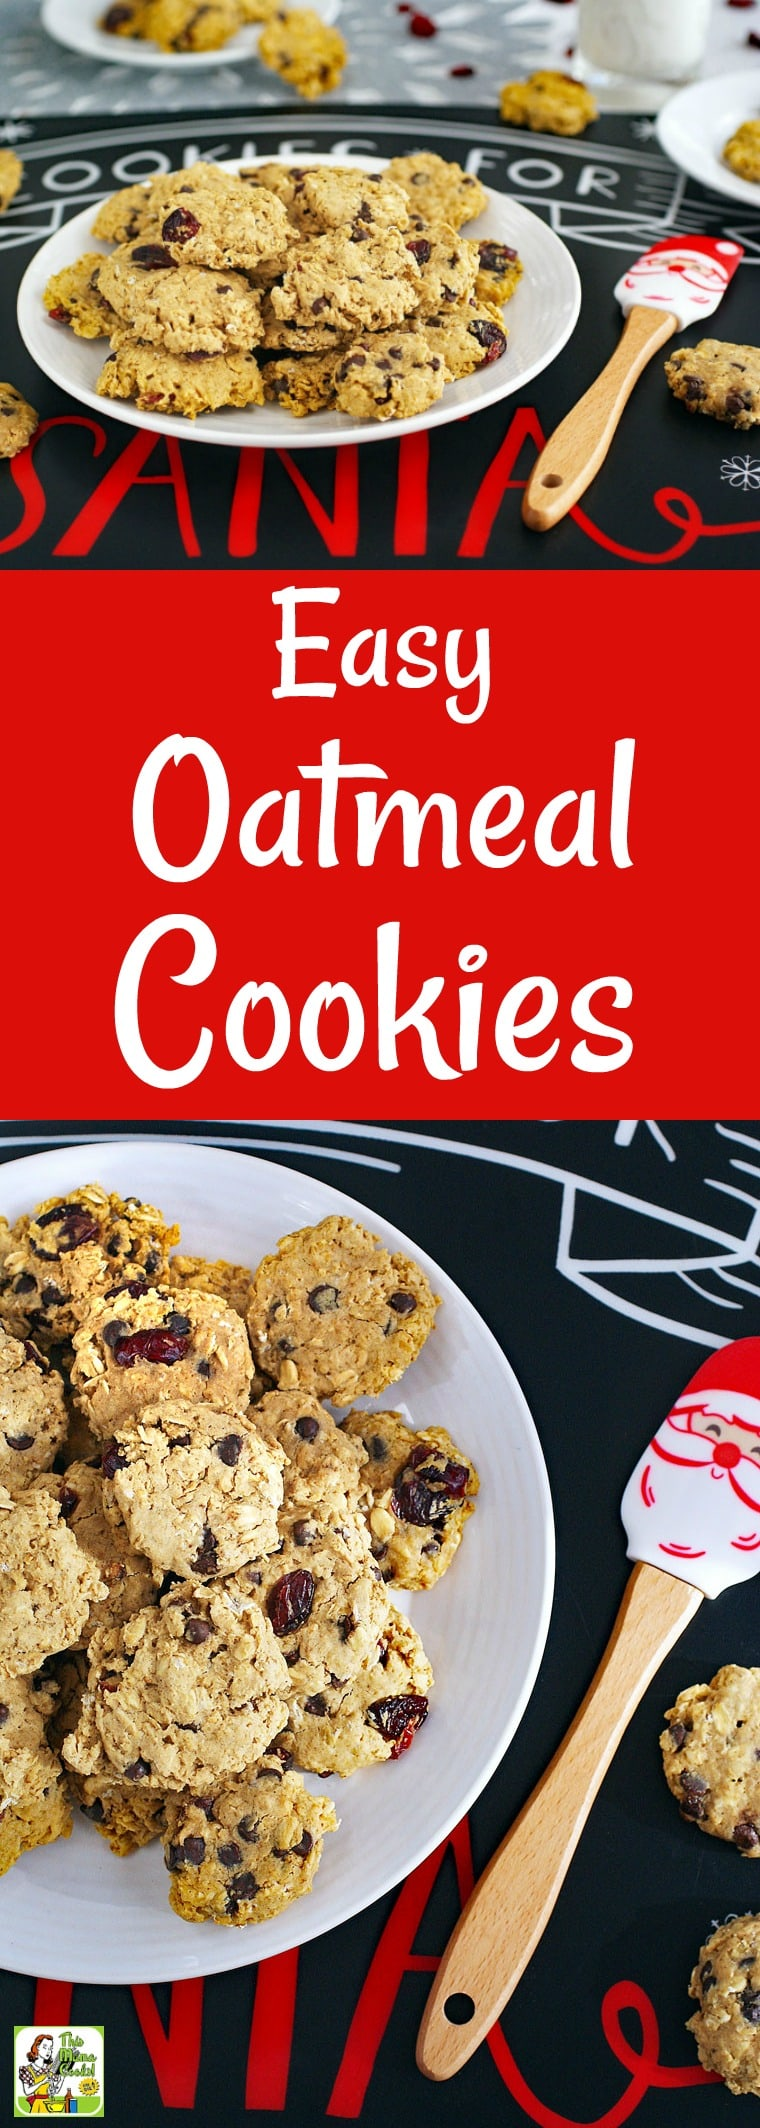 Easy Oatmeal Cookies for Cookie Swaps is the best oatmeal raisin cookie recipe for Christmas cookie exchanges. By adding optional ingredients like cranberries, chocolate chips or raisins, you can make a variety of gluten free oatmeal cookies. These holiday cookie swap cookies are also dairy free. Place the dry ingredients in a Mason jar for a homemade holiday gift. #glutenfree #dairyfree #cookies #cookie #homemadegift #cookieswap #cookieexchange #baking #Christmas #holiday